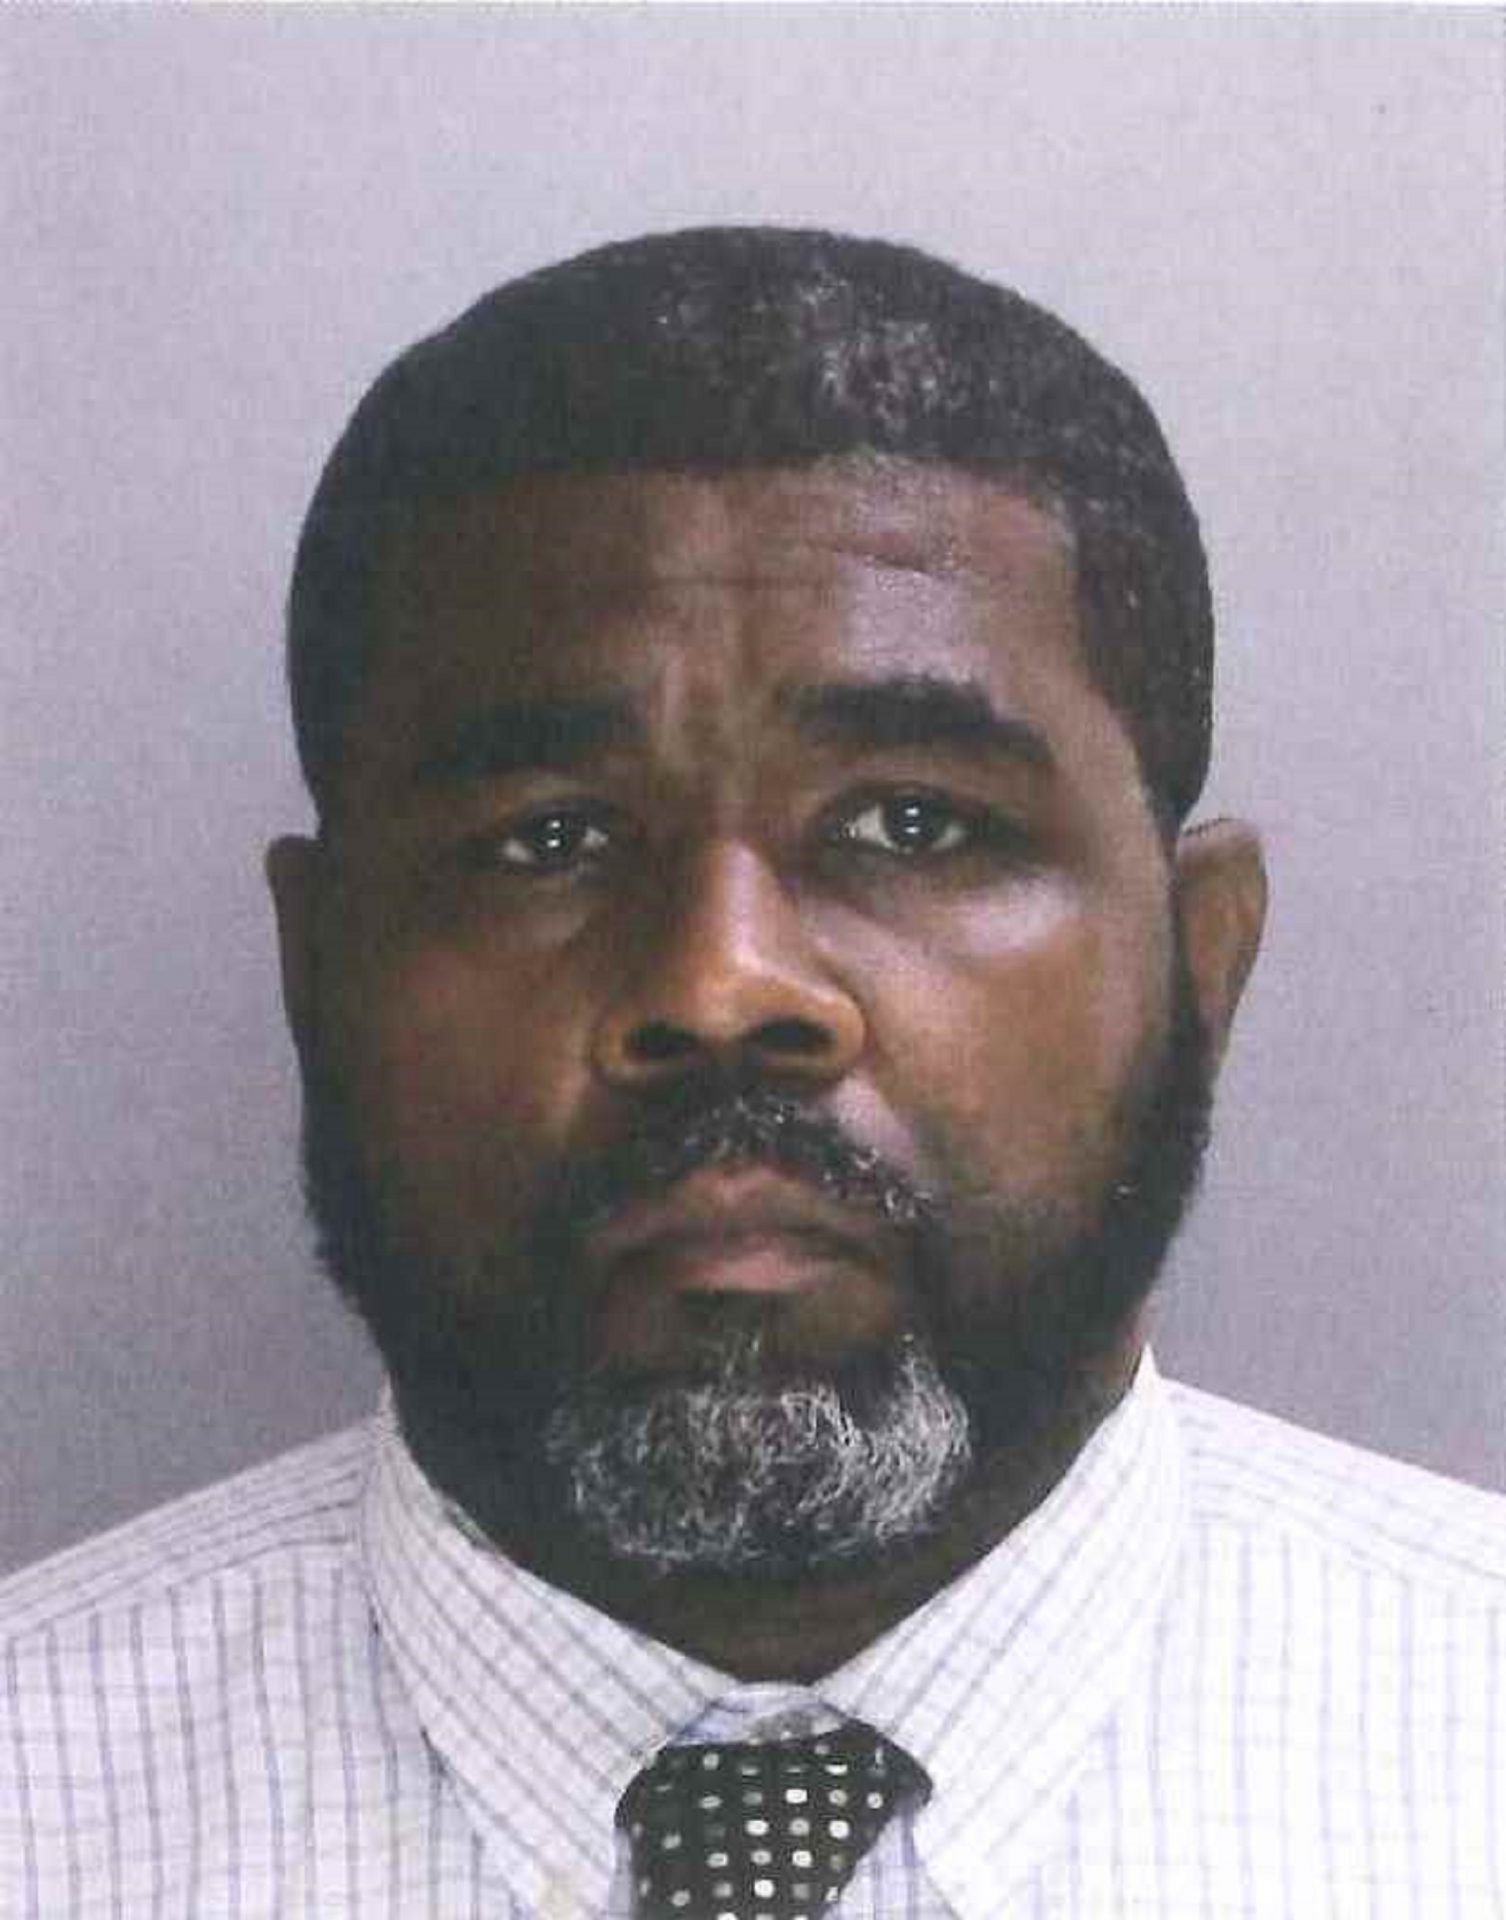 Chester County DA files charges against two Sunoco security